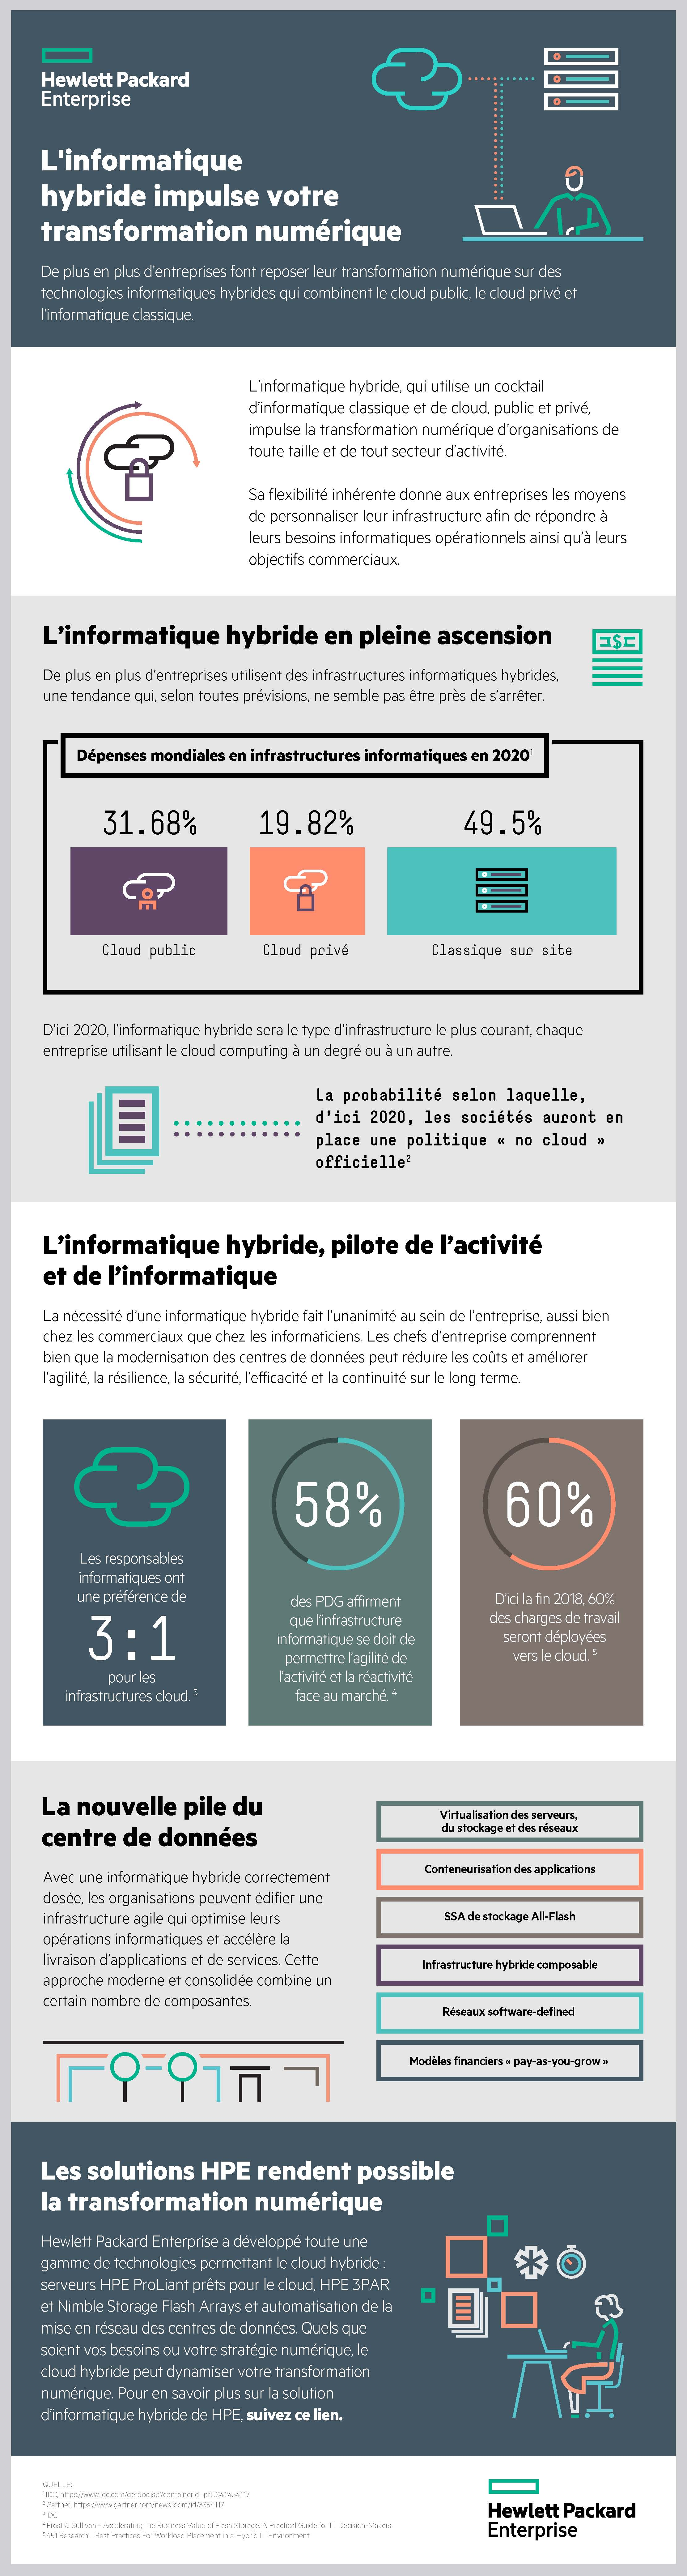 French_Infographic 1 - Hybrid IT